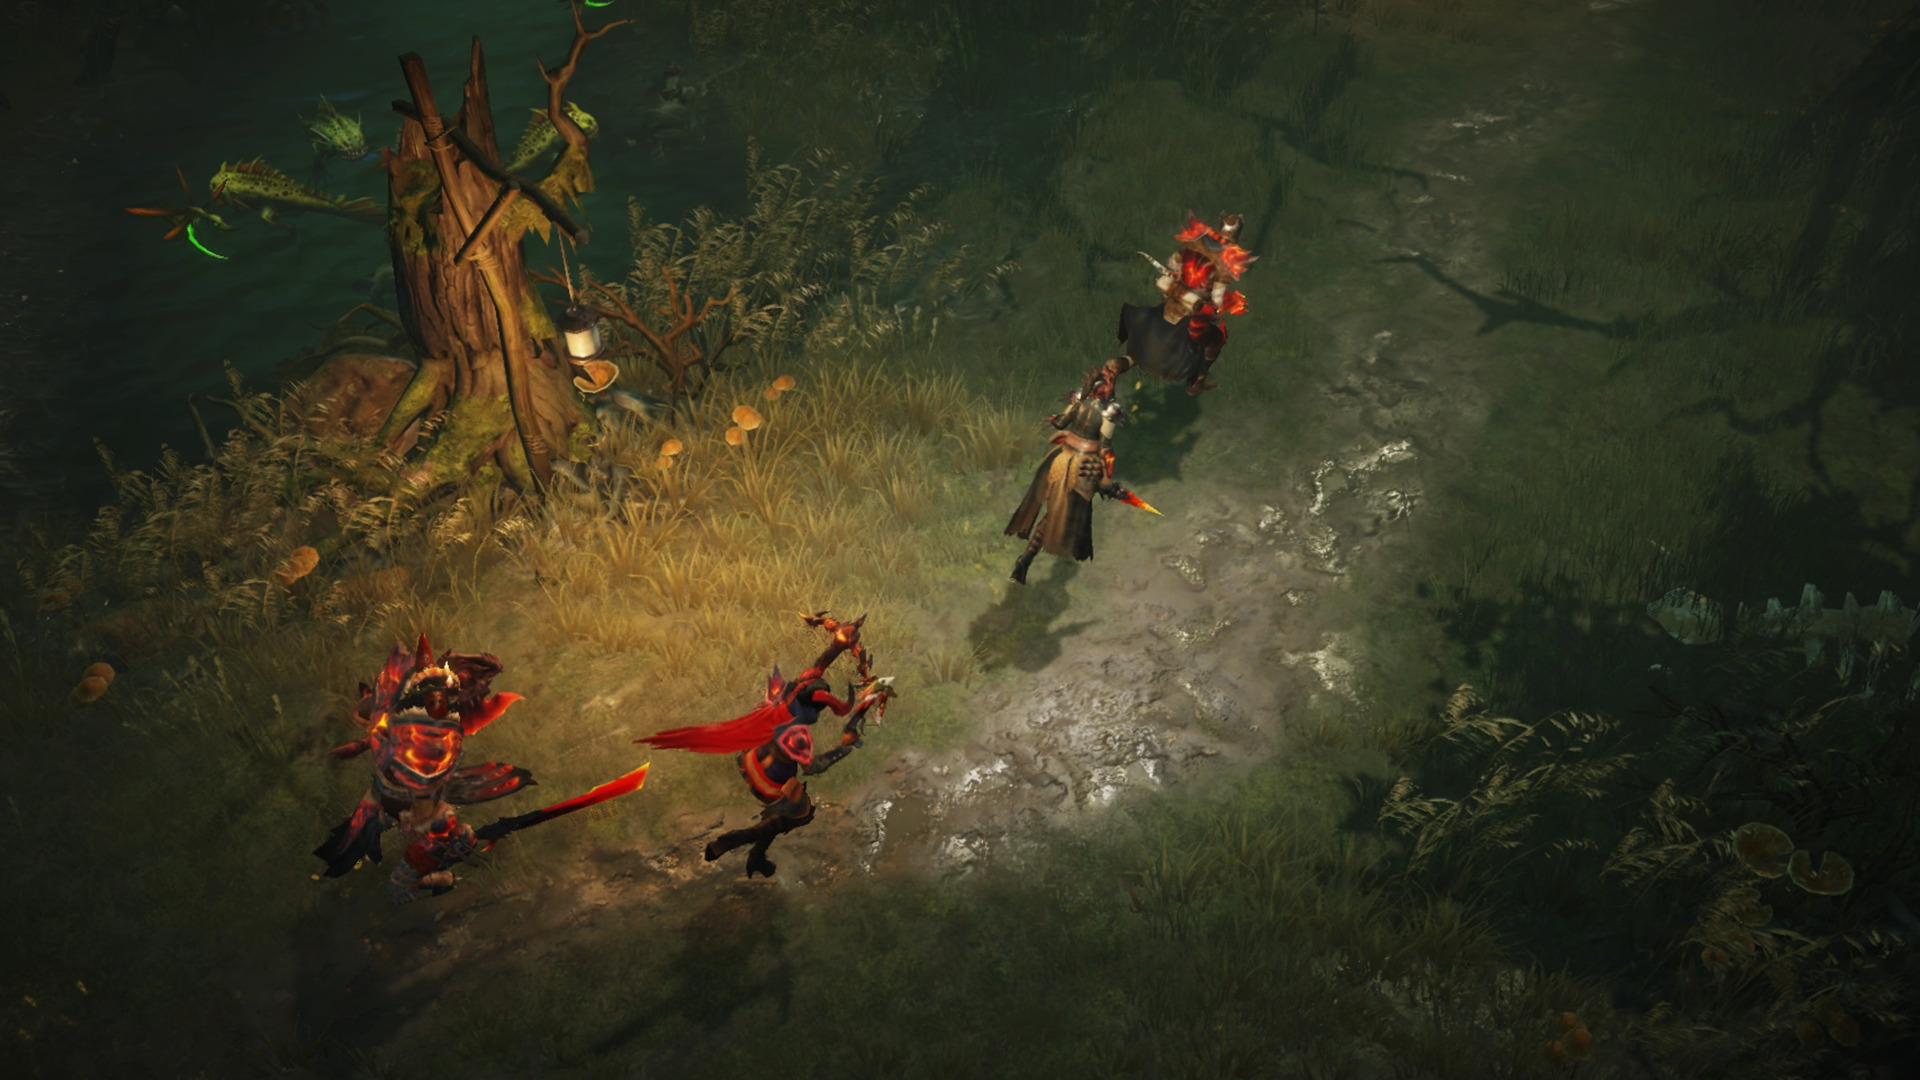 Diablo Immortal Update – Project Status, Development Progress, Possible Release Date, and More